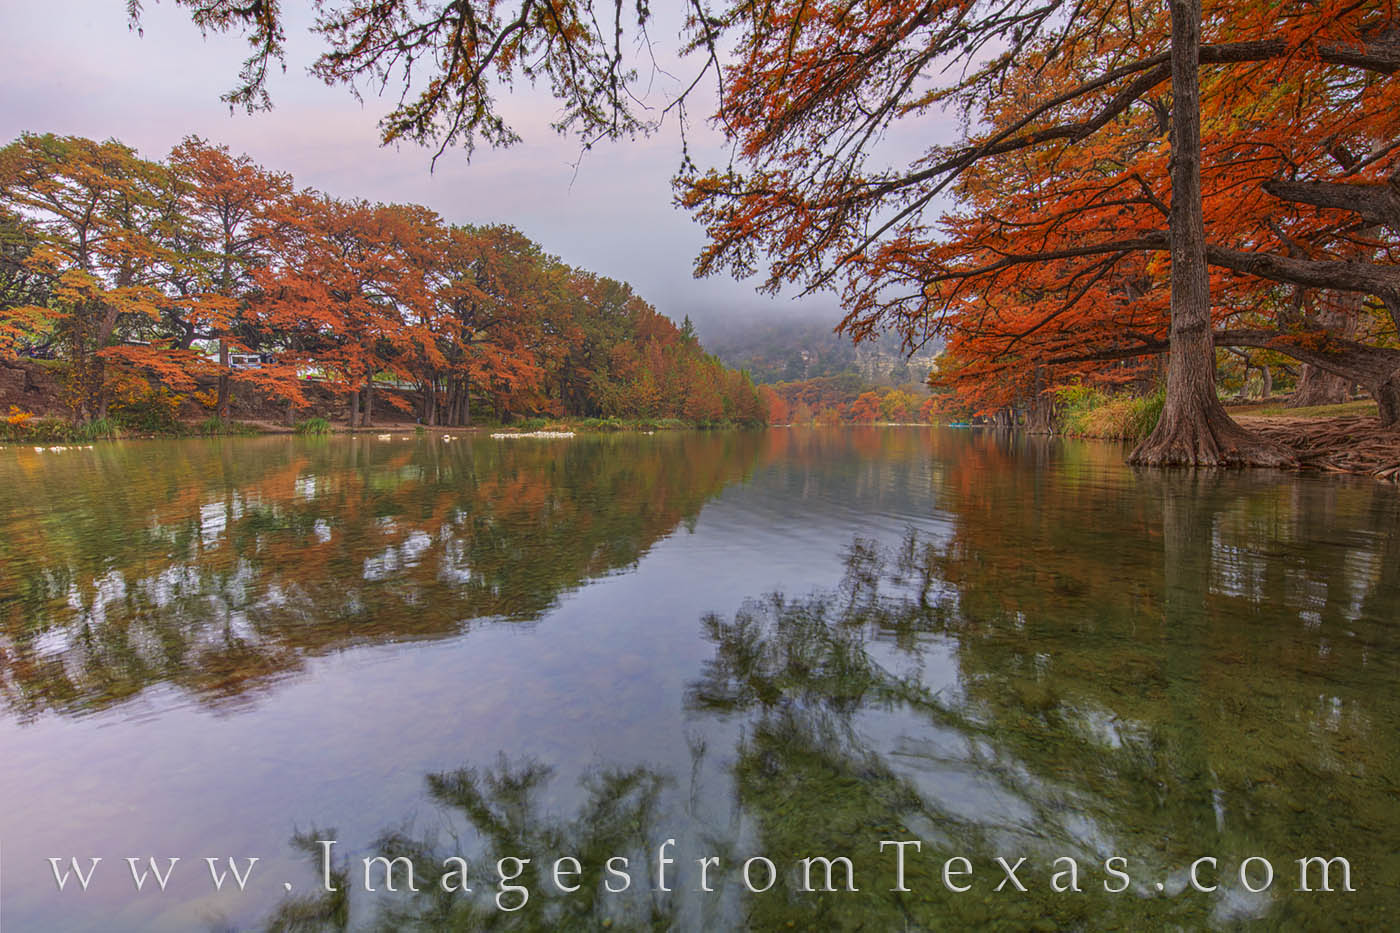 On a foggy November morning along the Frio River, the trees still showed off their fall colors of red and orange even as Old...